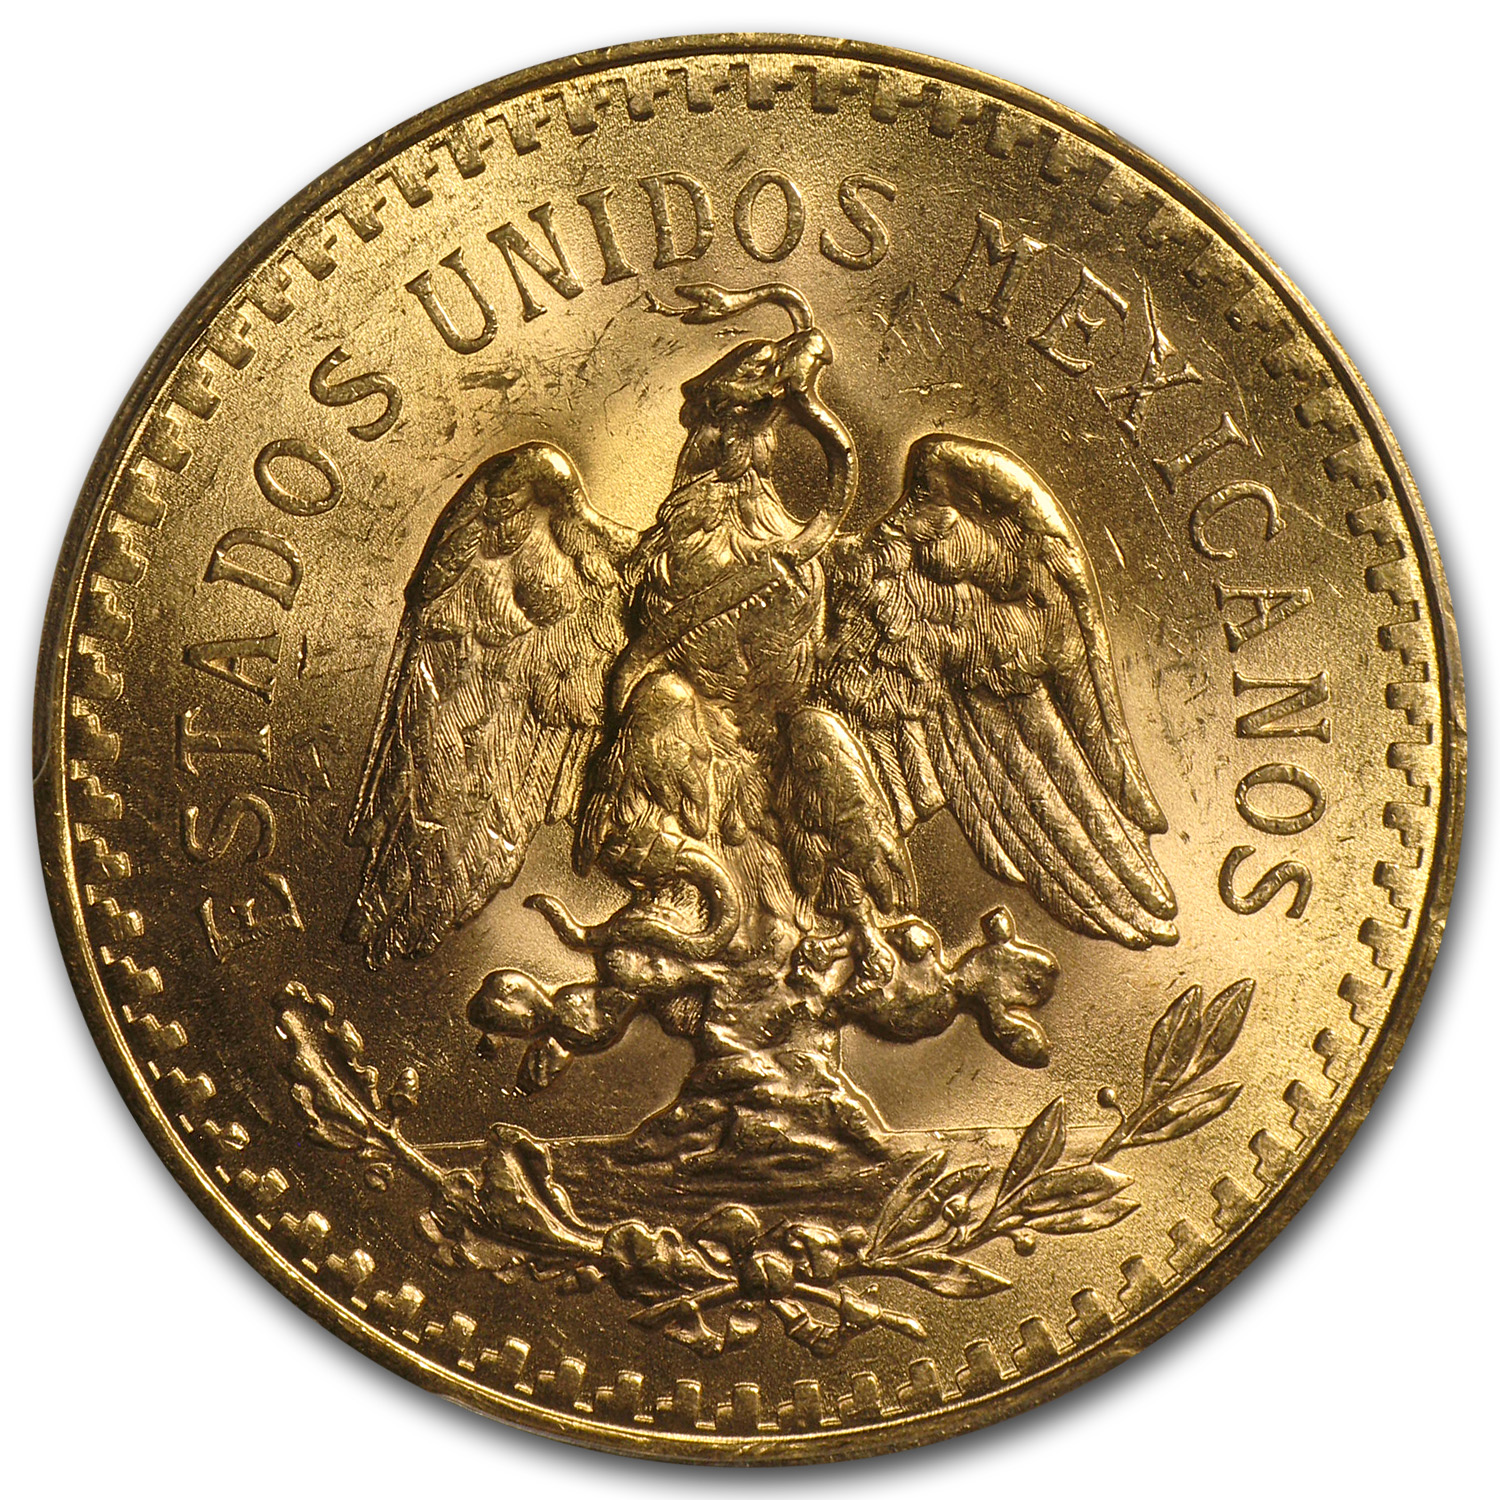 Mexico 1923 50 Pesos Gold Coin - MS-62 PCGS (Secure Plus!)